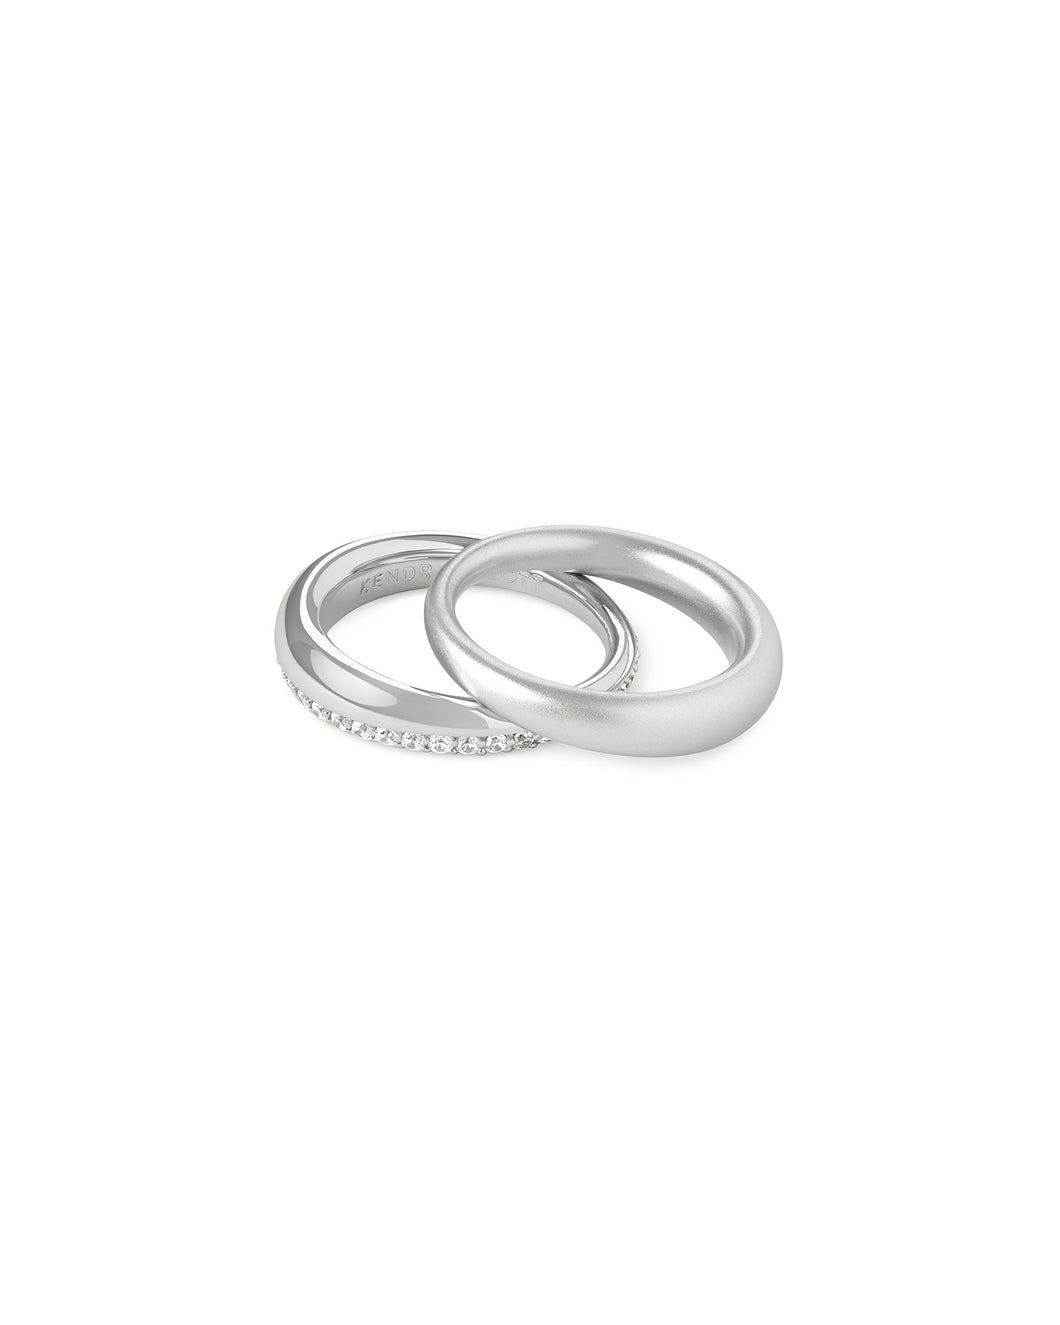 Colette Silver Ring Set of 2